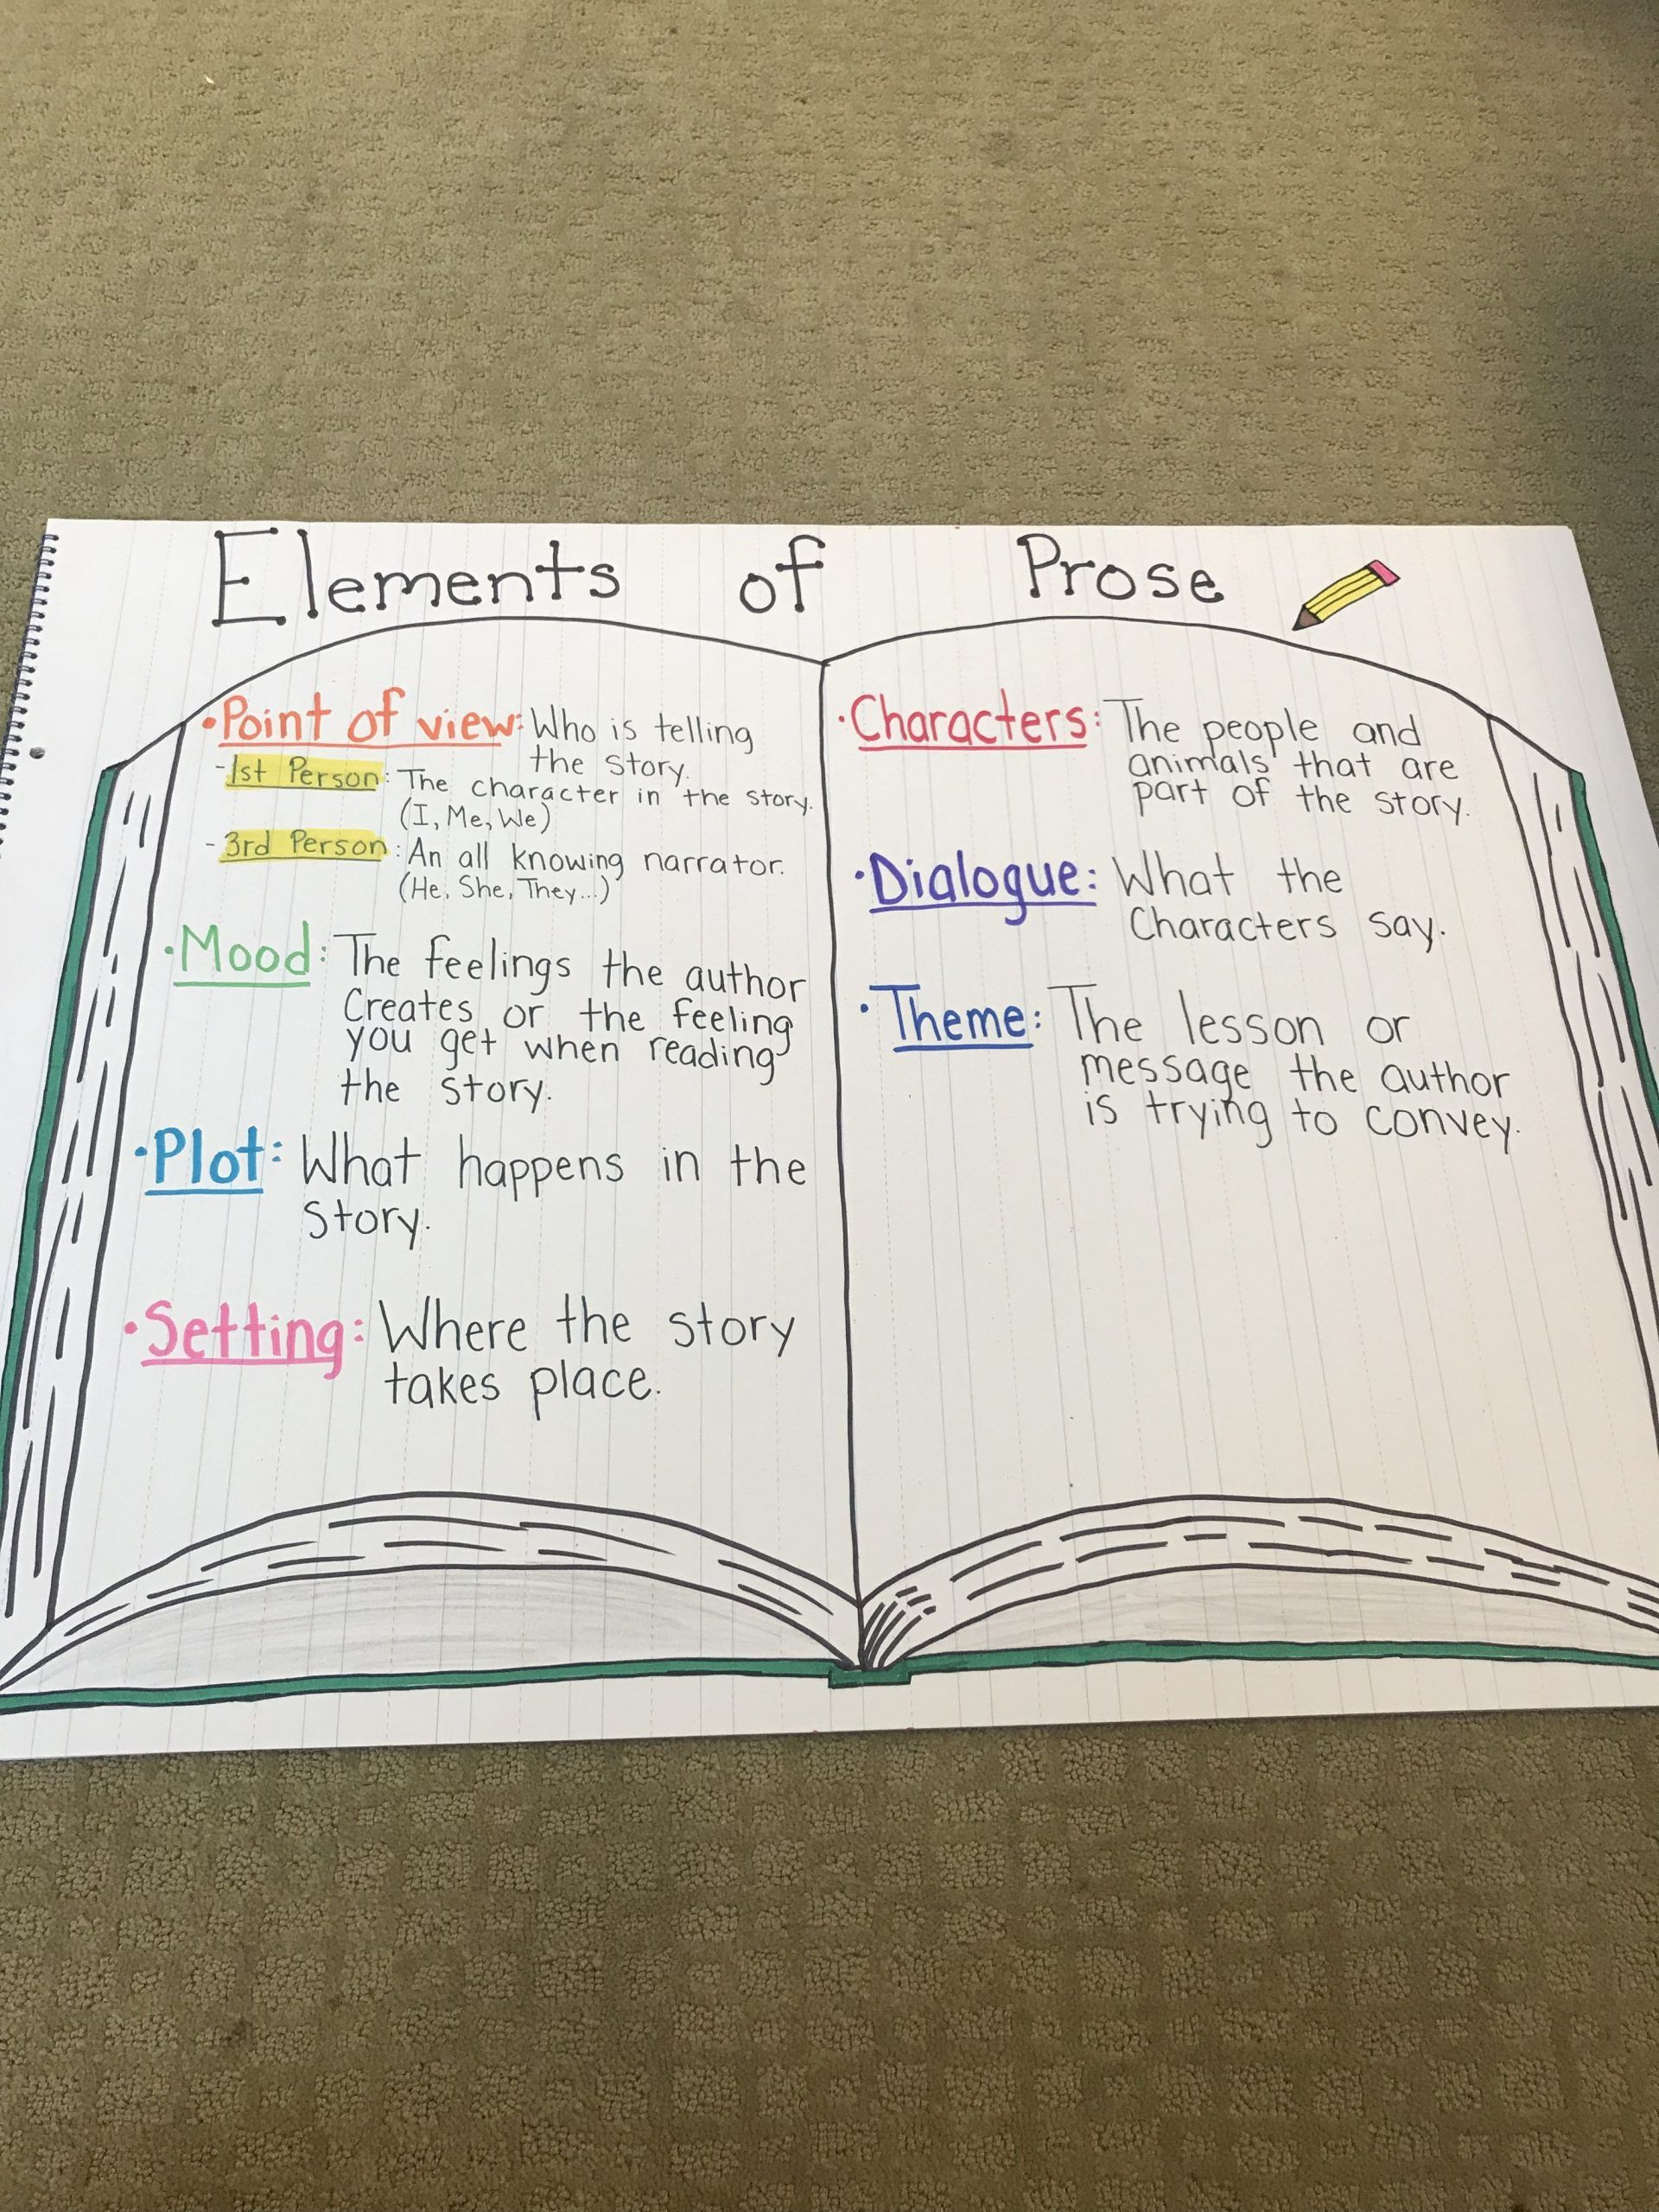 Story Elements Worksheets 4th Grade Elements Of Prose